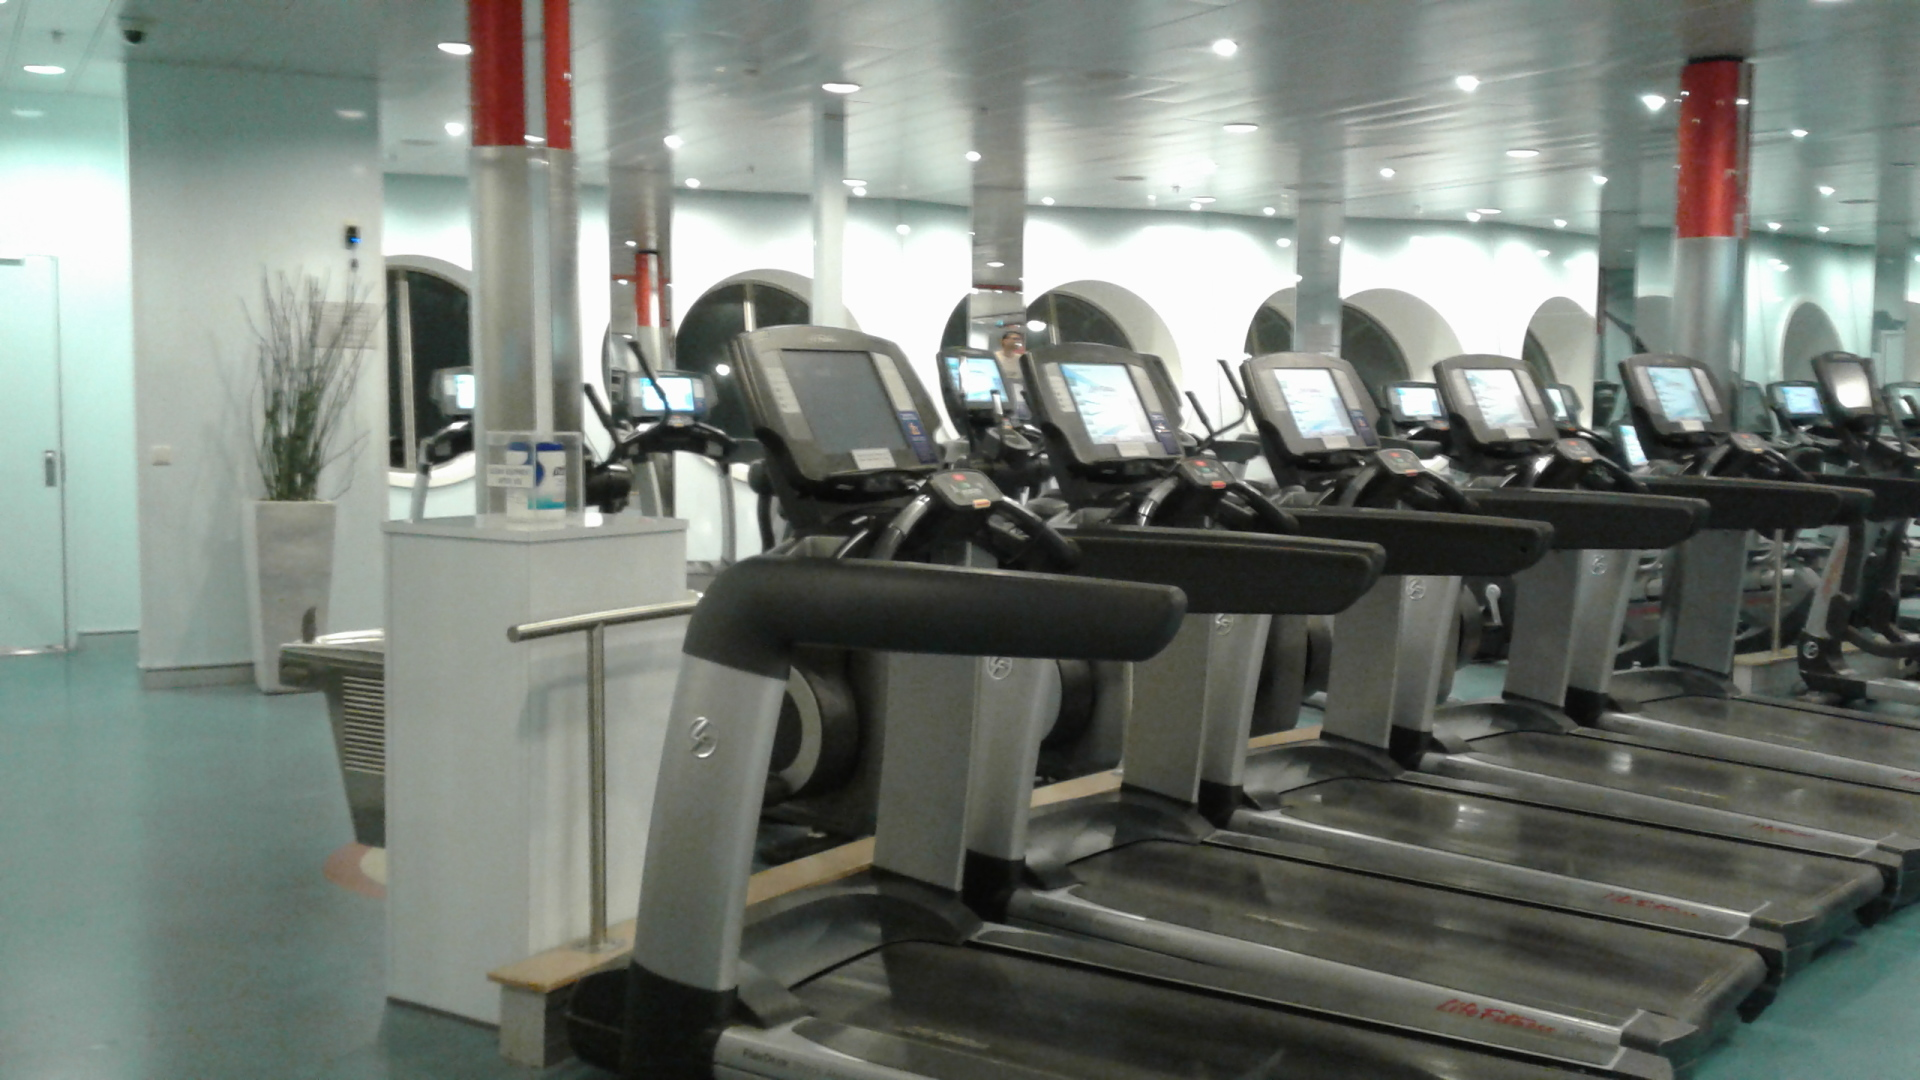 Ship Gym Workout Area